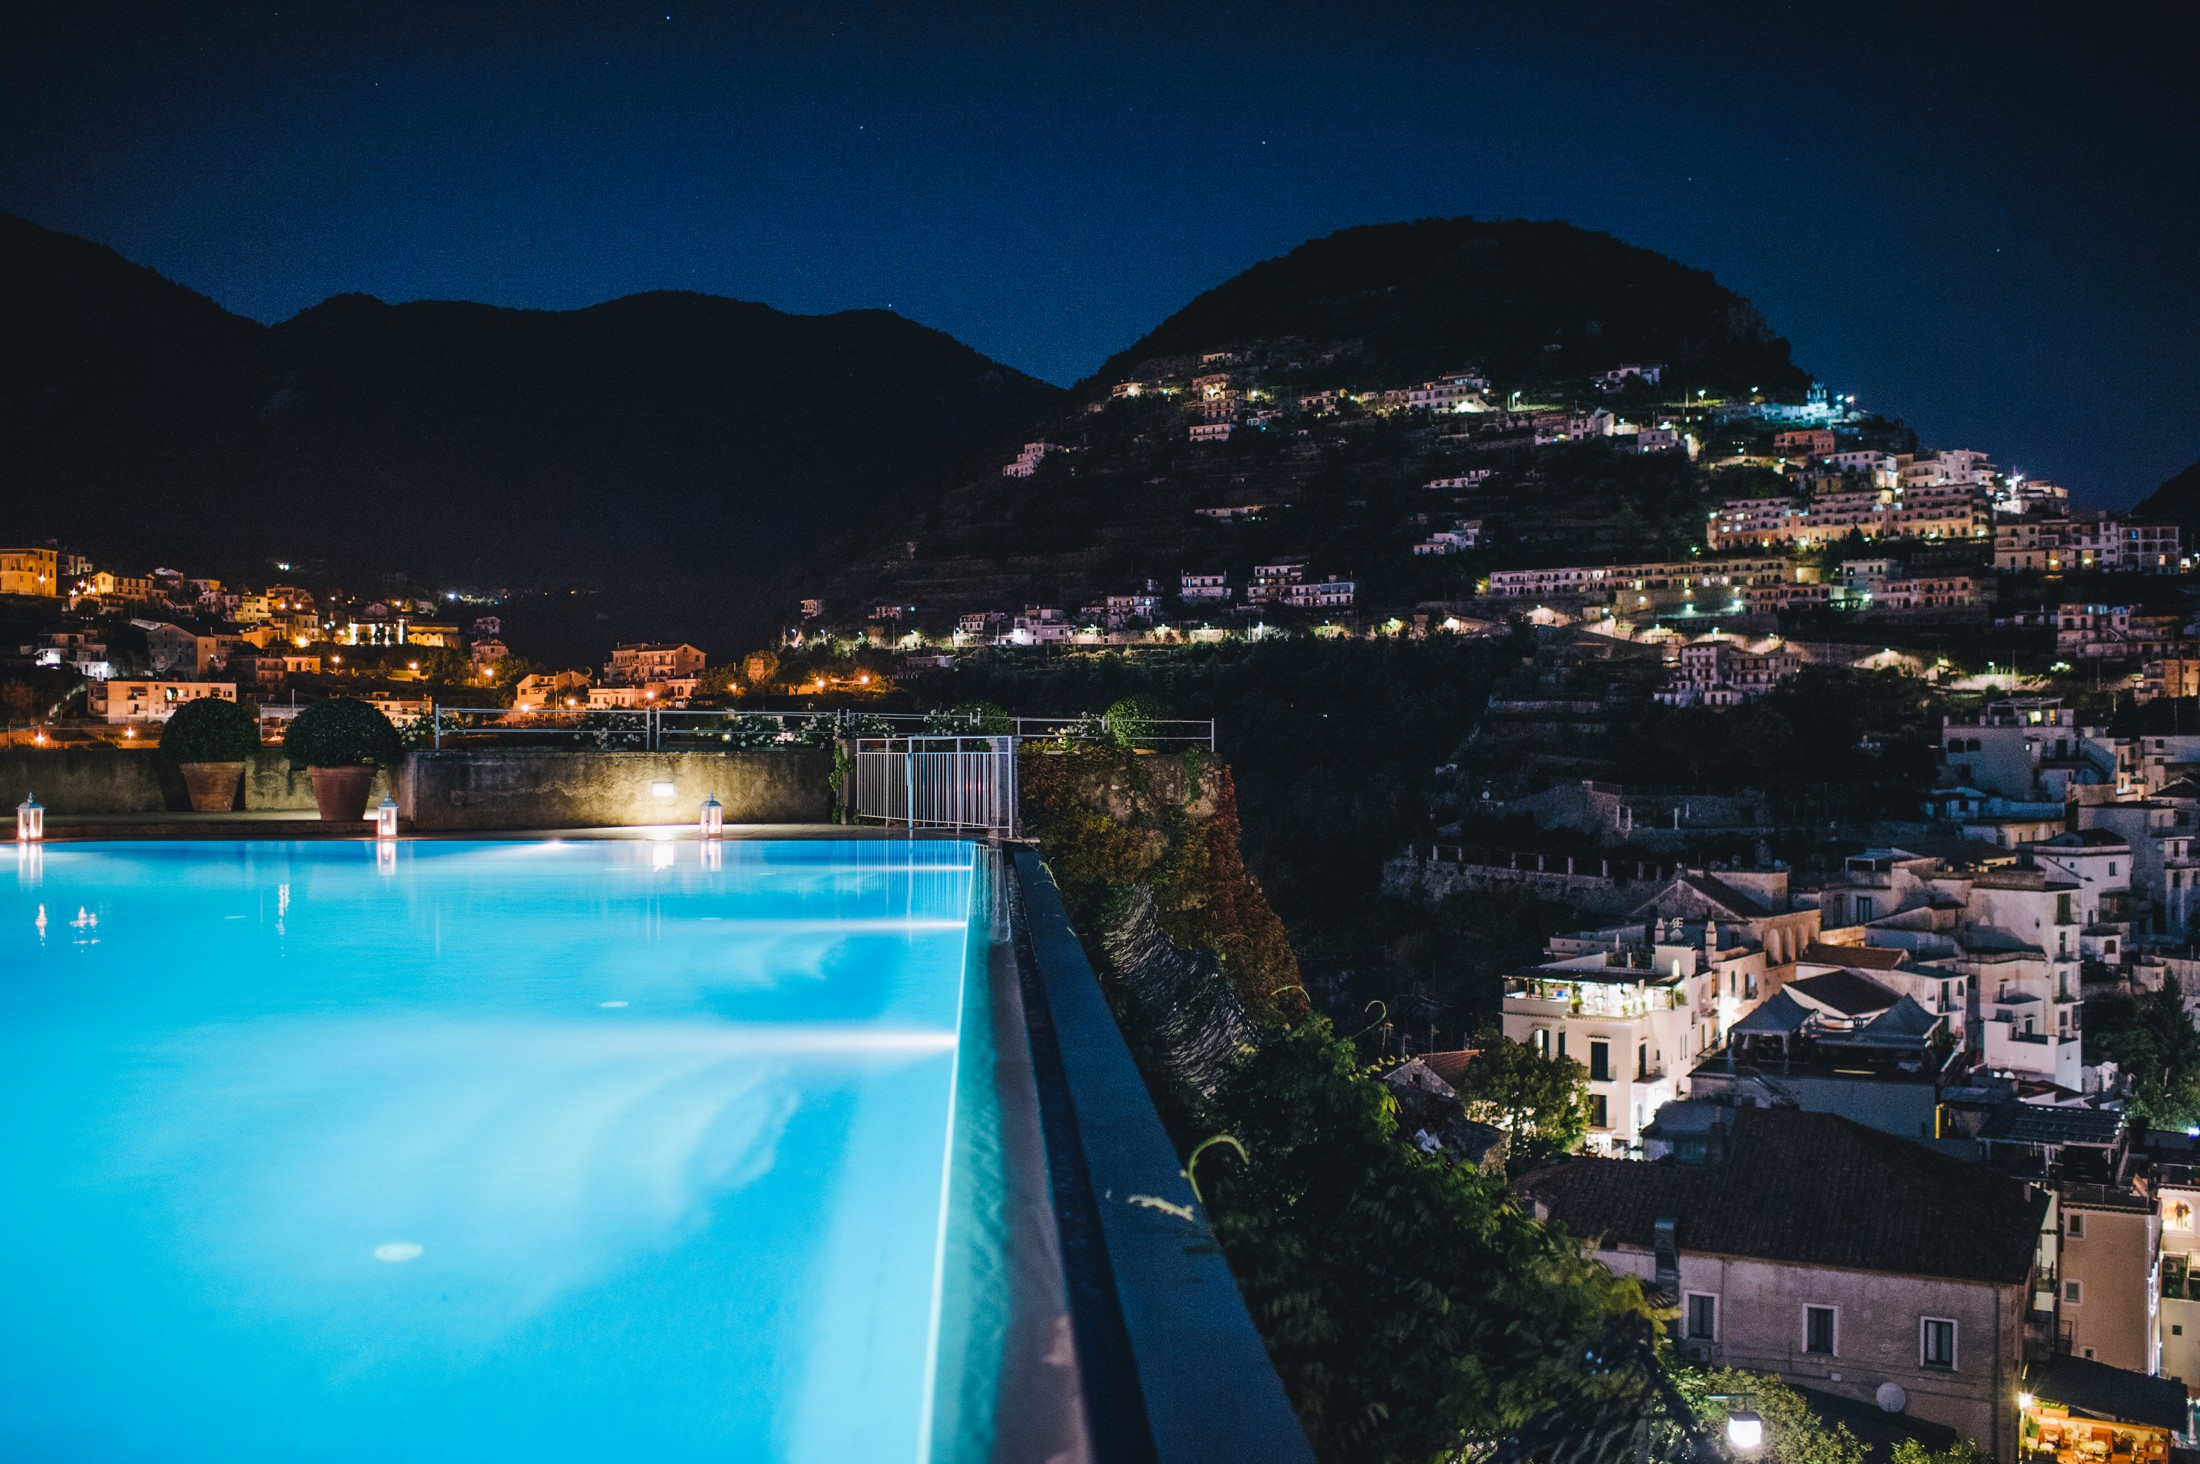 the caruso infinity pool by night